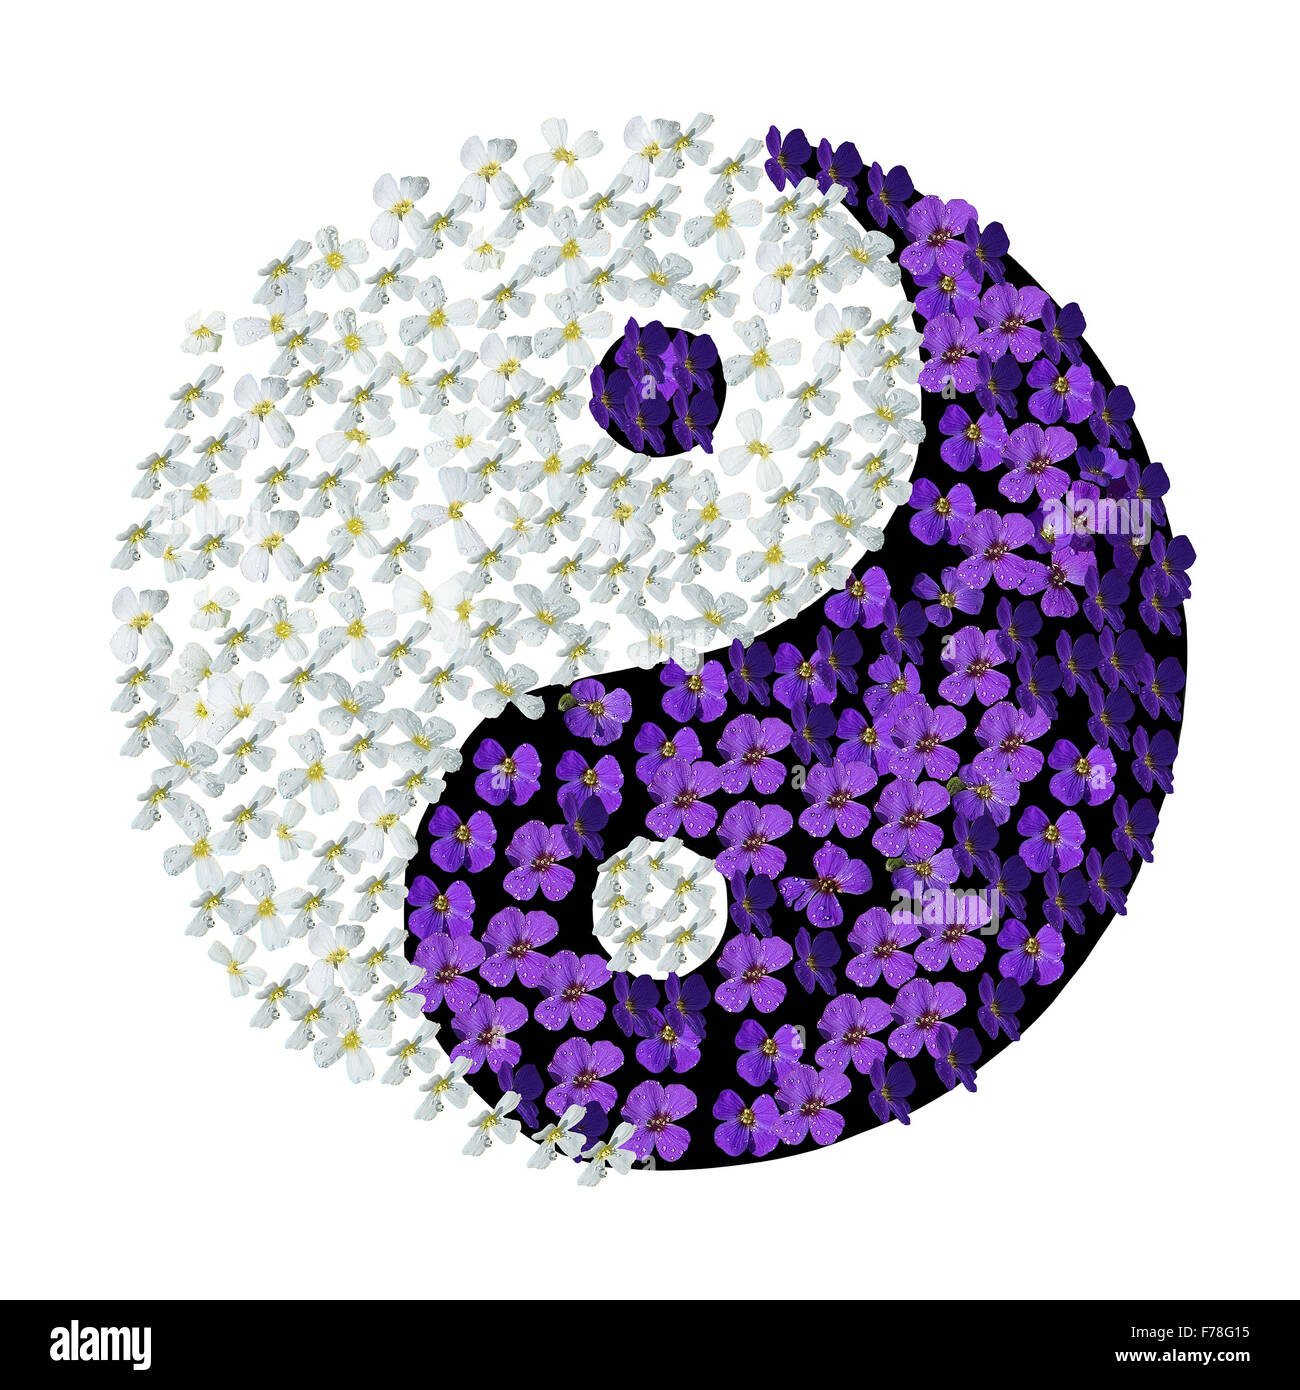 Floral Yin Yang Yin Yang Symbol With White And Purple Flowers With